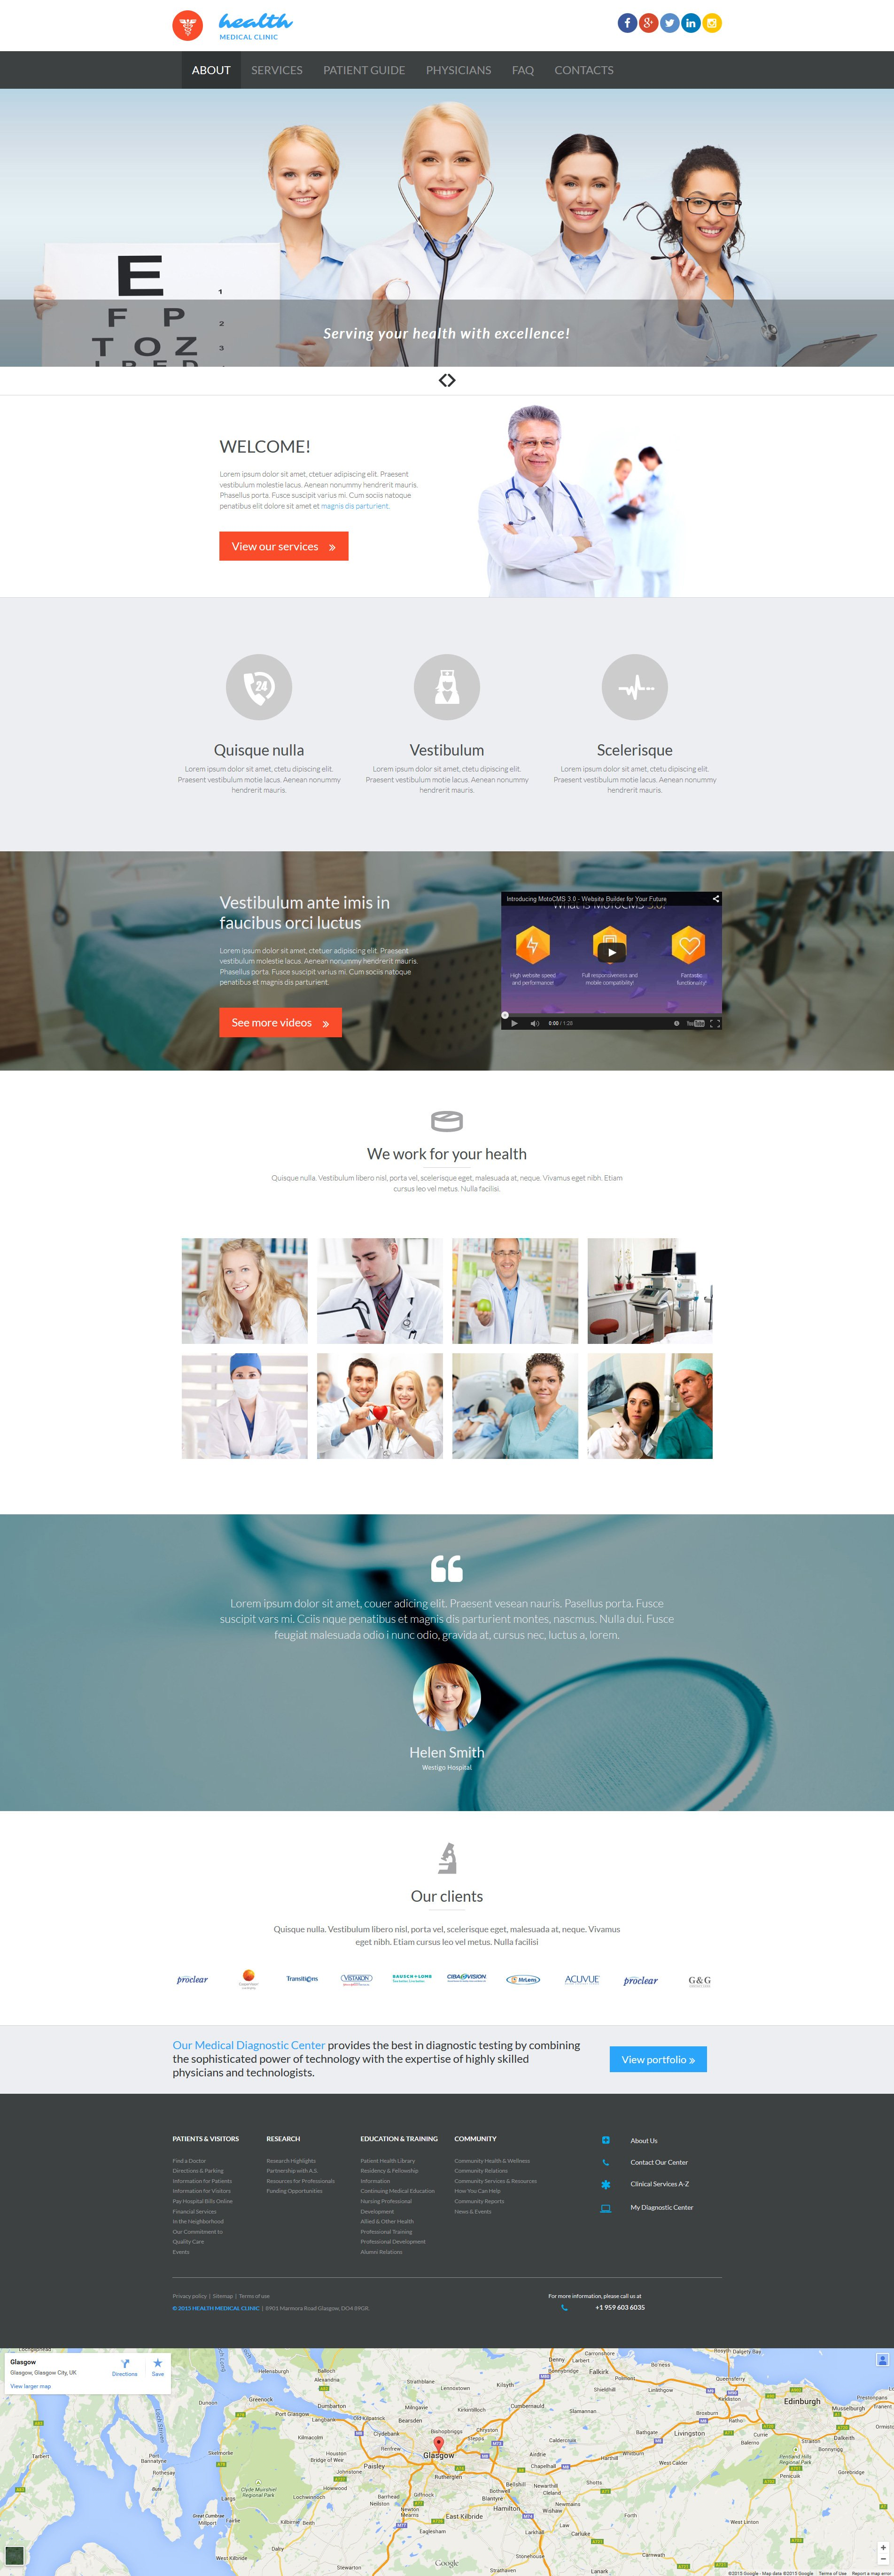 The Health Medical Center Moto CMS 3 Templates Design 53228, one of the best Moto CMS 3 templates of its kind (medical, most popular), also known as health medical center Moto CMS 3 template, medical clinic Moto CMS 3 template, doctor Moto CMS 3 template, services Moto CMS 3 template, client Moto CMS 3 template, testimonials Moto CMS 3 template, body Moto CMS 3 template, help Moto CMS 3 template, inspection Moto CMS 3 template, equipment Moto CMS 3 template, patients Moto CMS 3 template, medicine Moto CMS 3 template, healthcare Moto CMS 3 template, surgery Moto CMS 3 template, science Moto CMS 3 template, laboratory Moto CMS 3 template, drugs Moto CMS 3 template, pills Moto CMS 3 template, nurse Moto CMS 3 template, cure Moto CMS 3 template, vaccine Moto CMS 3 template, treatment Moto CMS 3 template, oncology Moto CMS 3 template, prescription Moto CMS 3 template, pharmaceutical Moto CMS 3 template, disease Moto CMS 3 template, illness Moto CMS 3 template, vitam and related with health medical center, medical clinic, doctor, services, client, testimonials, body, help, inspection, equipment, patients, medicine, healthcare, surgery, science, laboratory, drugs, pills, nurse, cure, vaccine, treatment, oncology, prescription, pharmaceutical, disease, illness, vitam, etc.